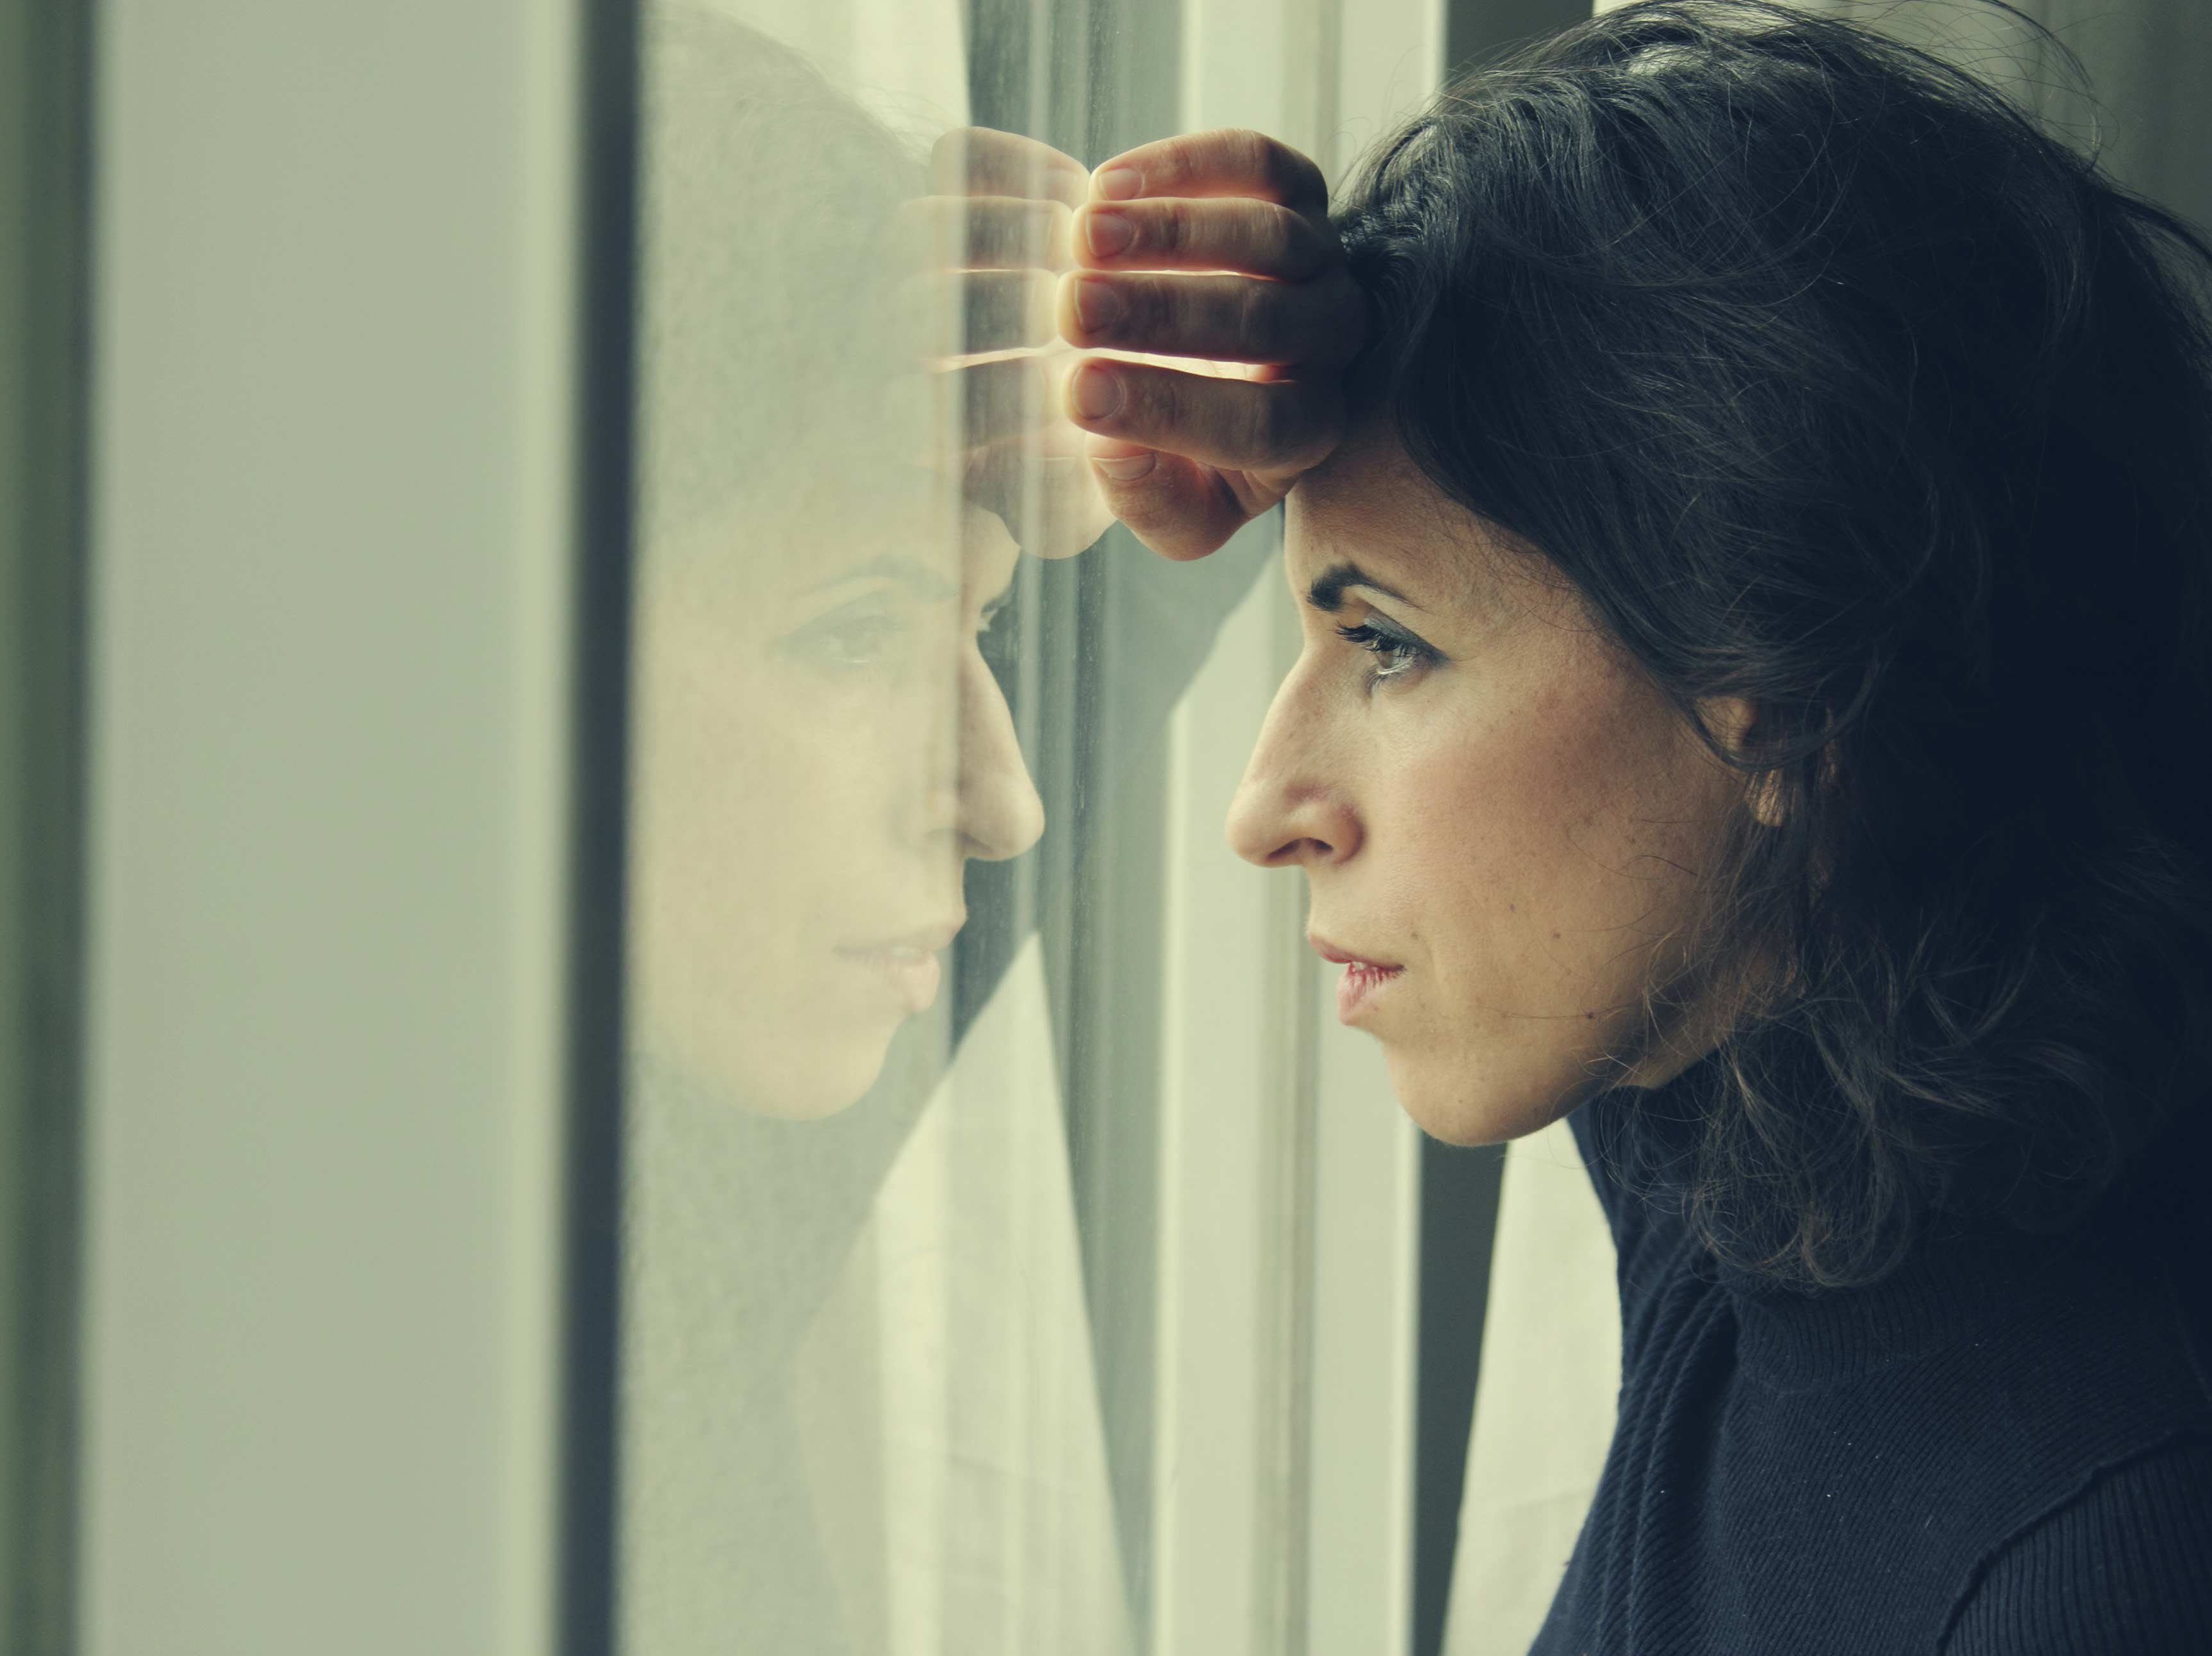 A nutrient imbalance may be the root of depression